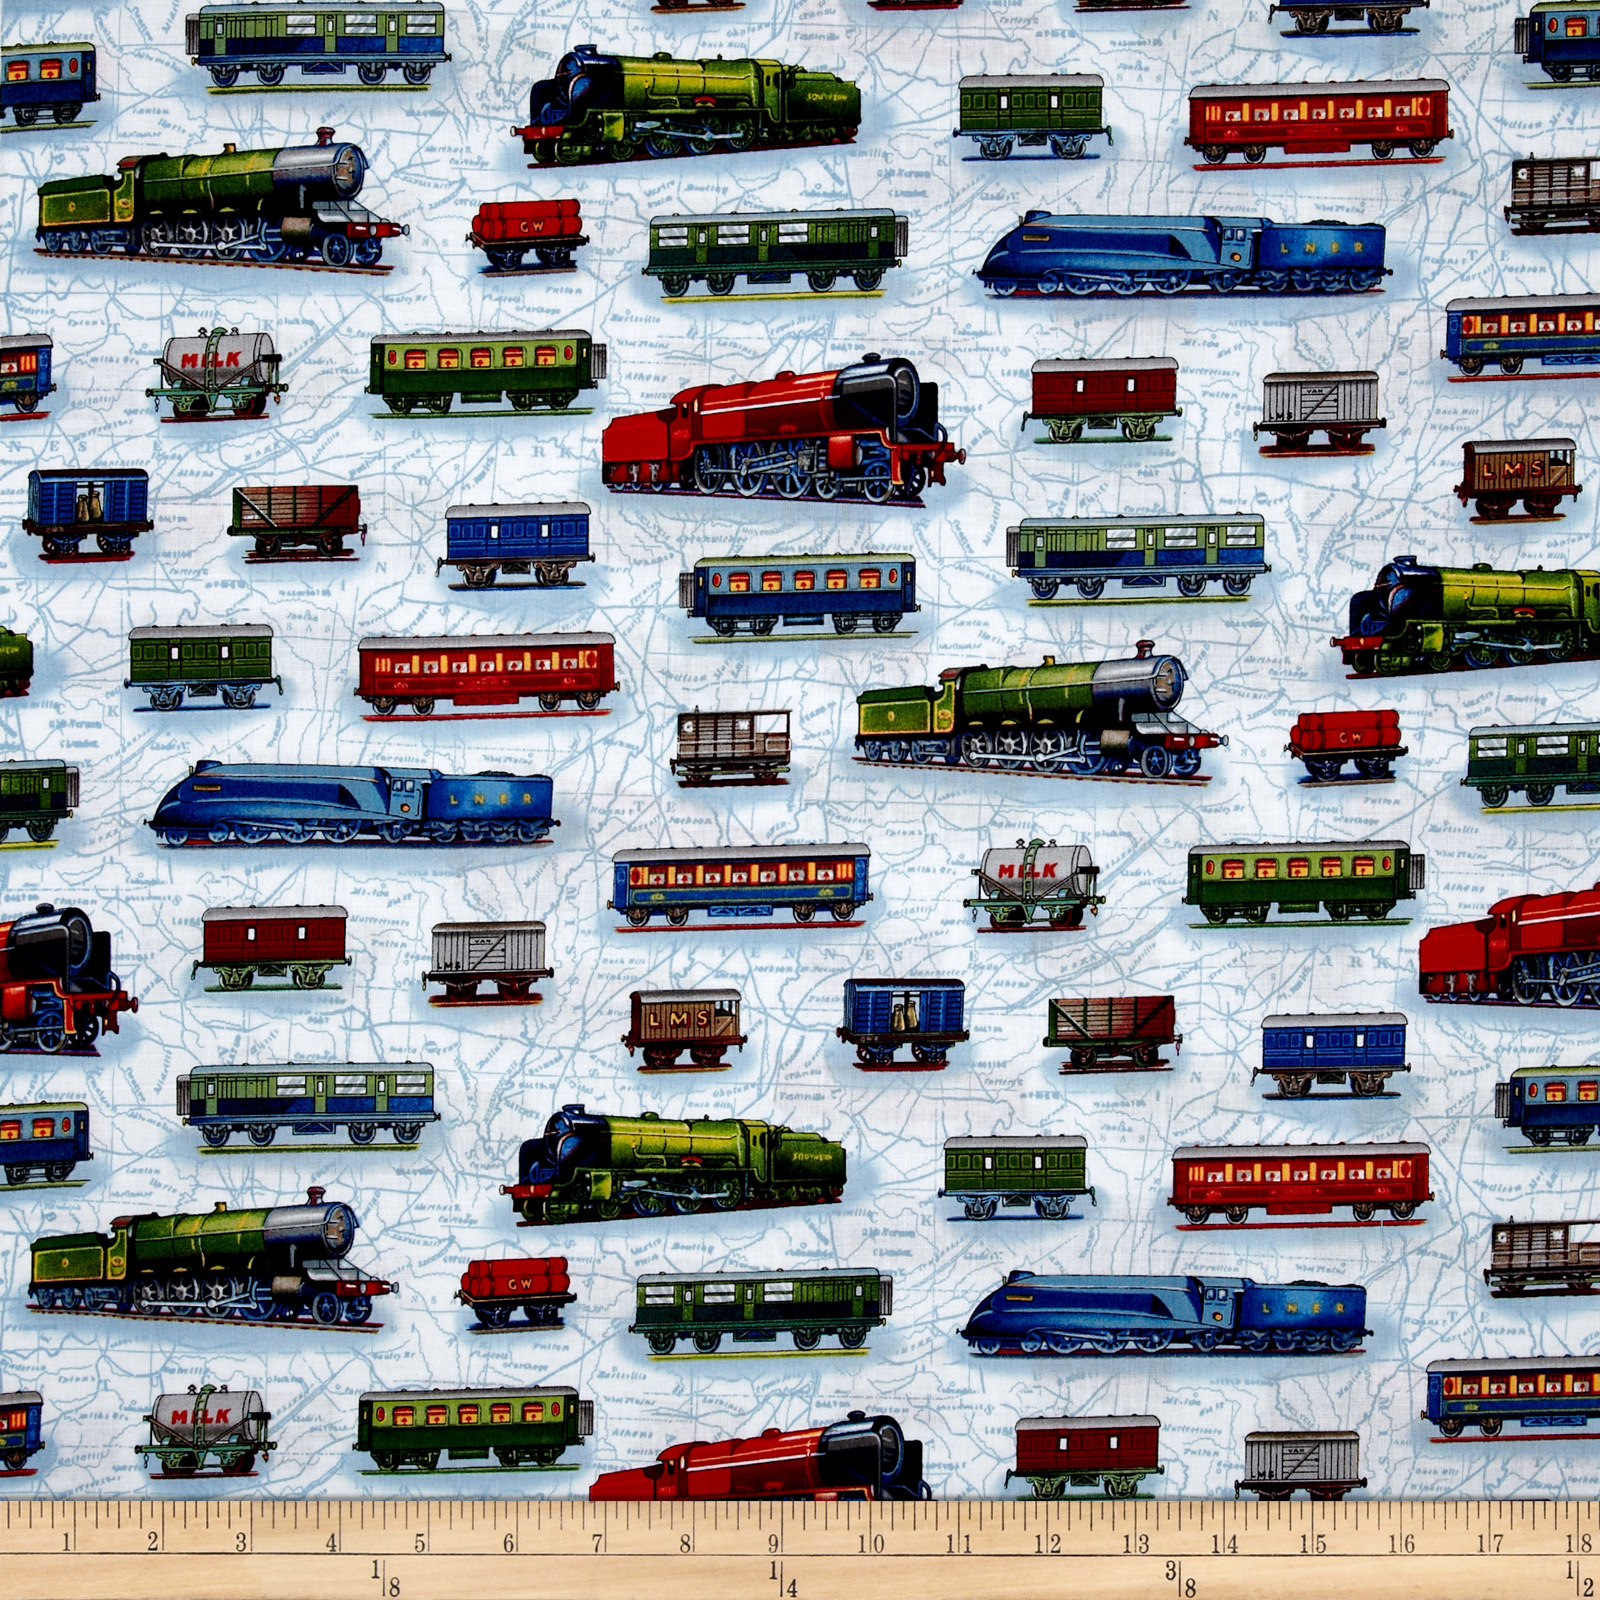 All Aboard Train Cars Bright Fabric